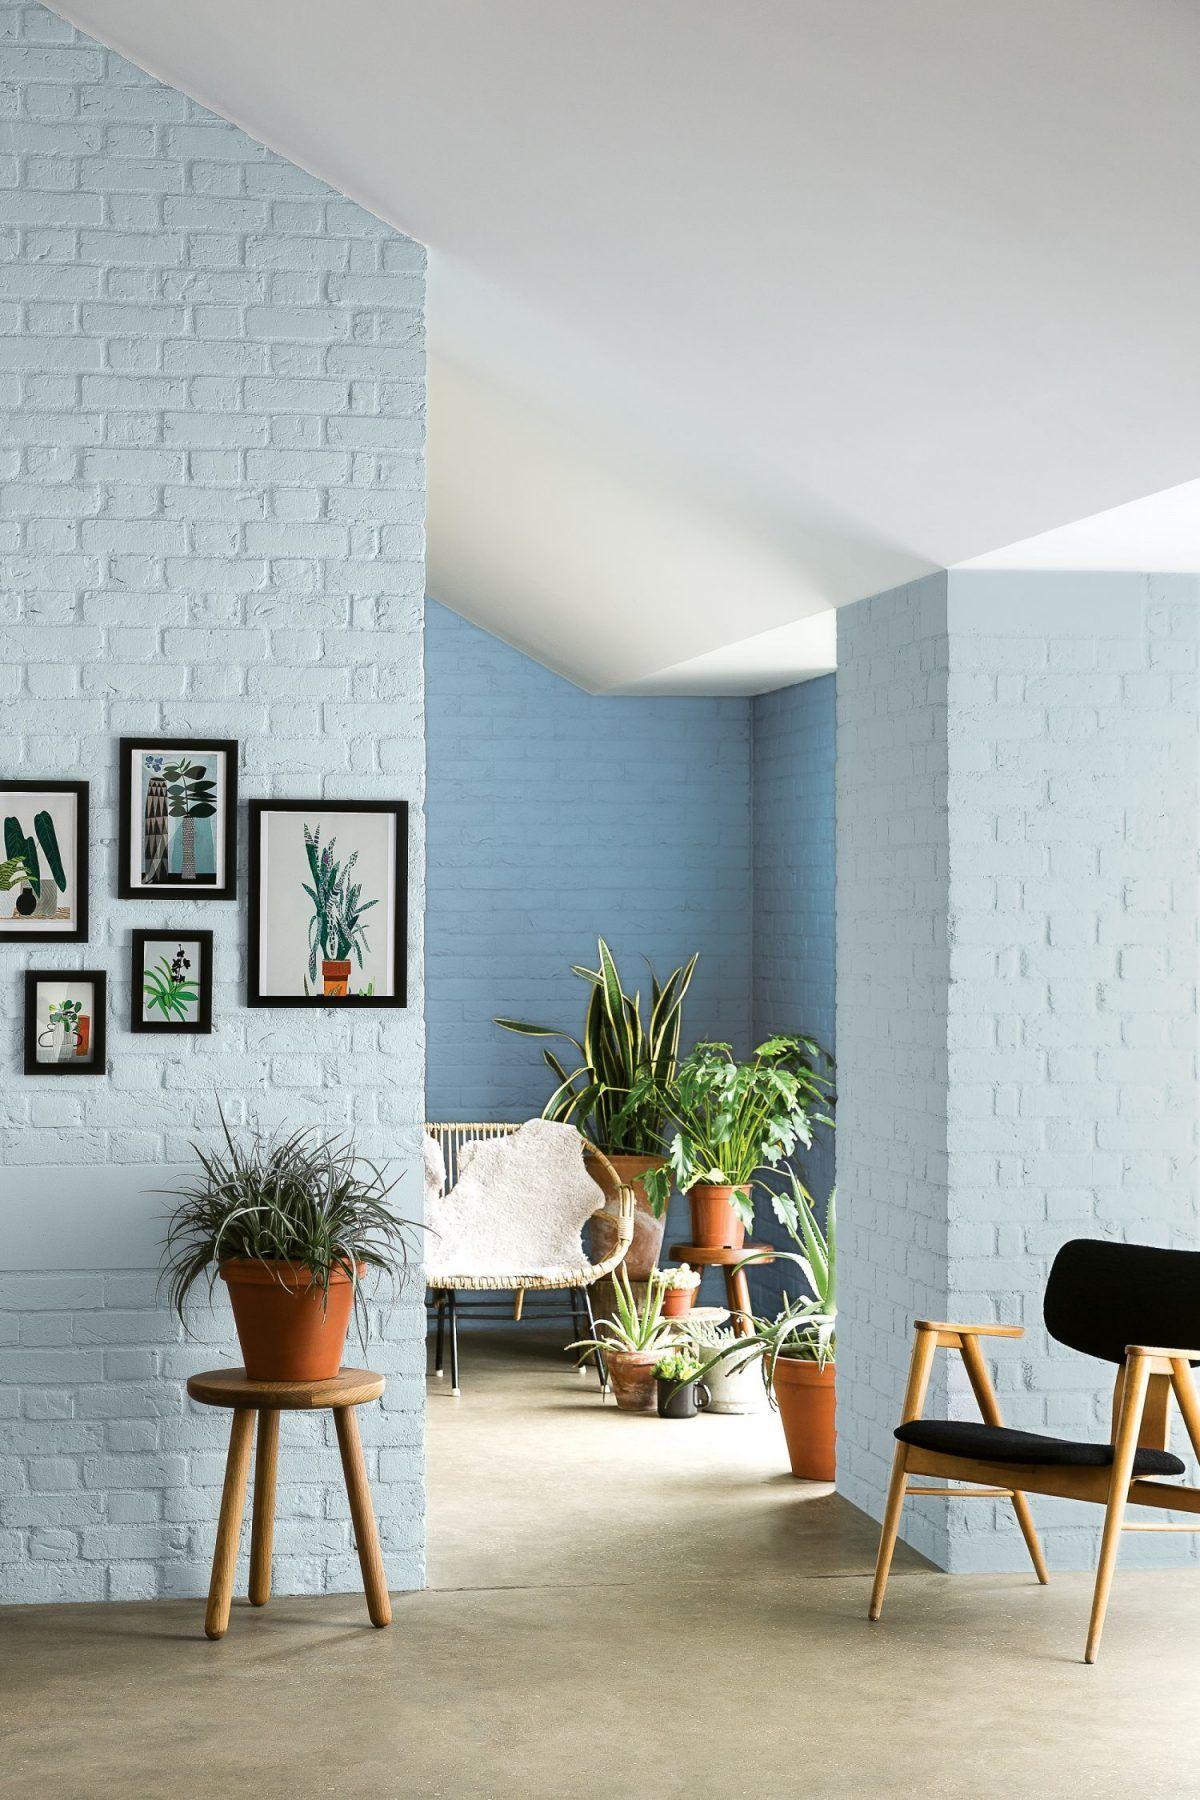 Image By Anastasia Rumyantseva On 2020 Trends Brick Interior